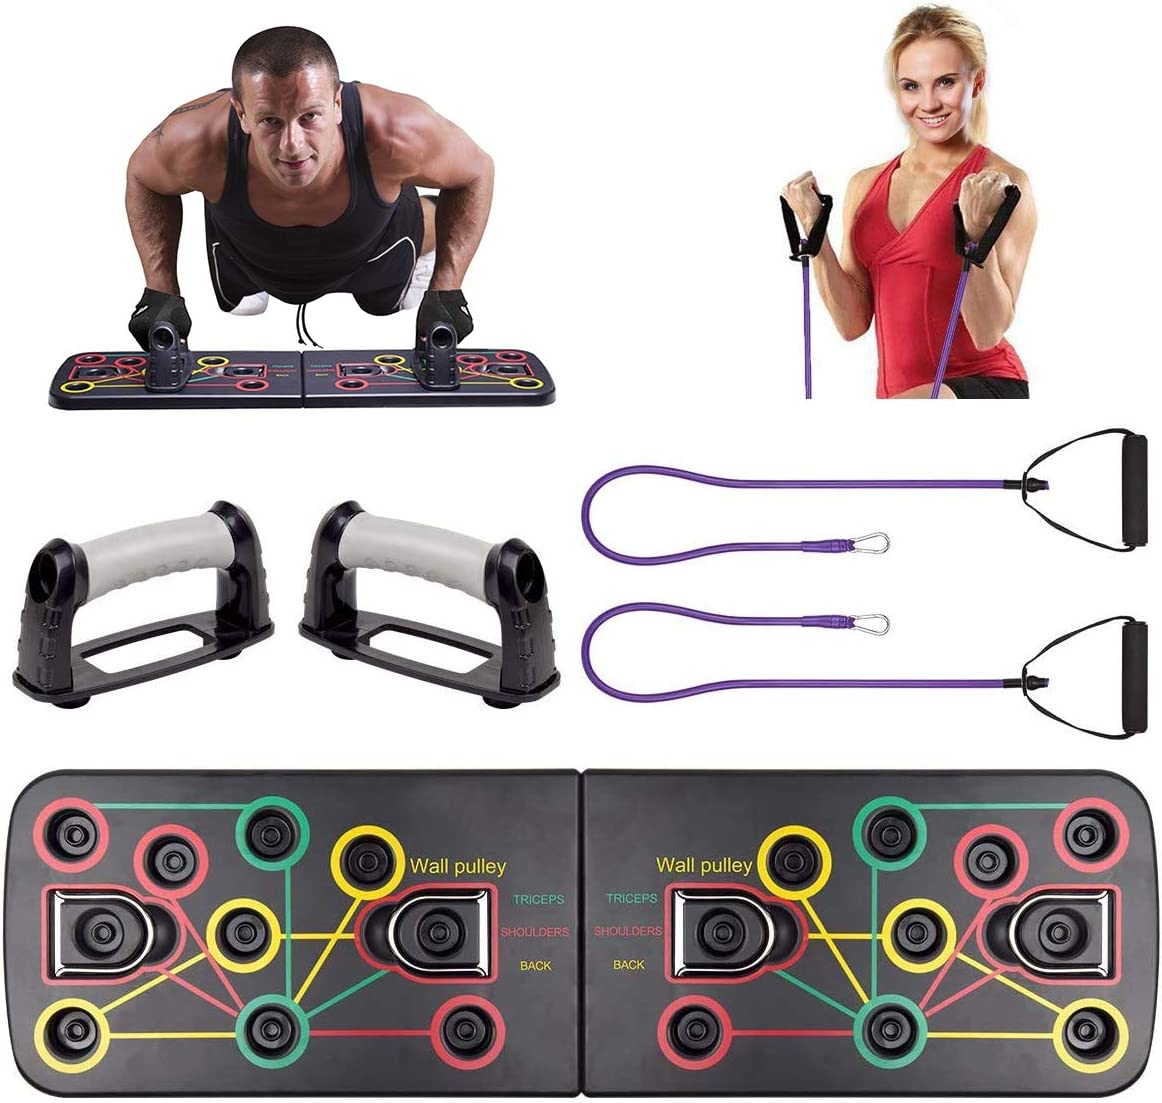 Push Up Board System with Pull Rope,13 in 1 Body Building Exercise Tools Workout Push-up Stands,Multi-Function Portable Bracket Board Push Up Training System